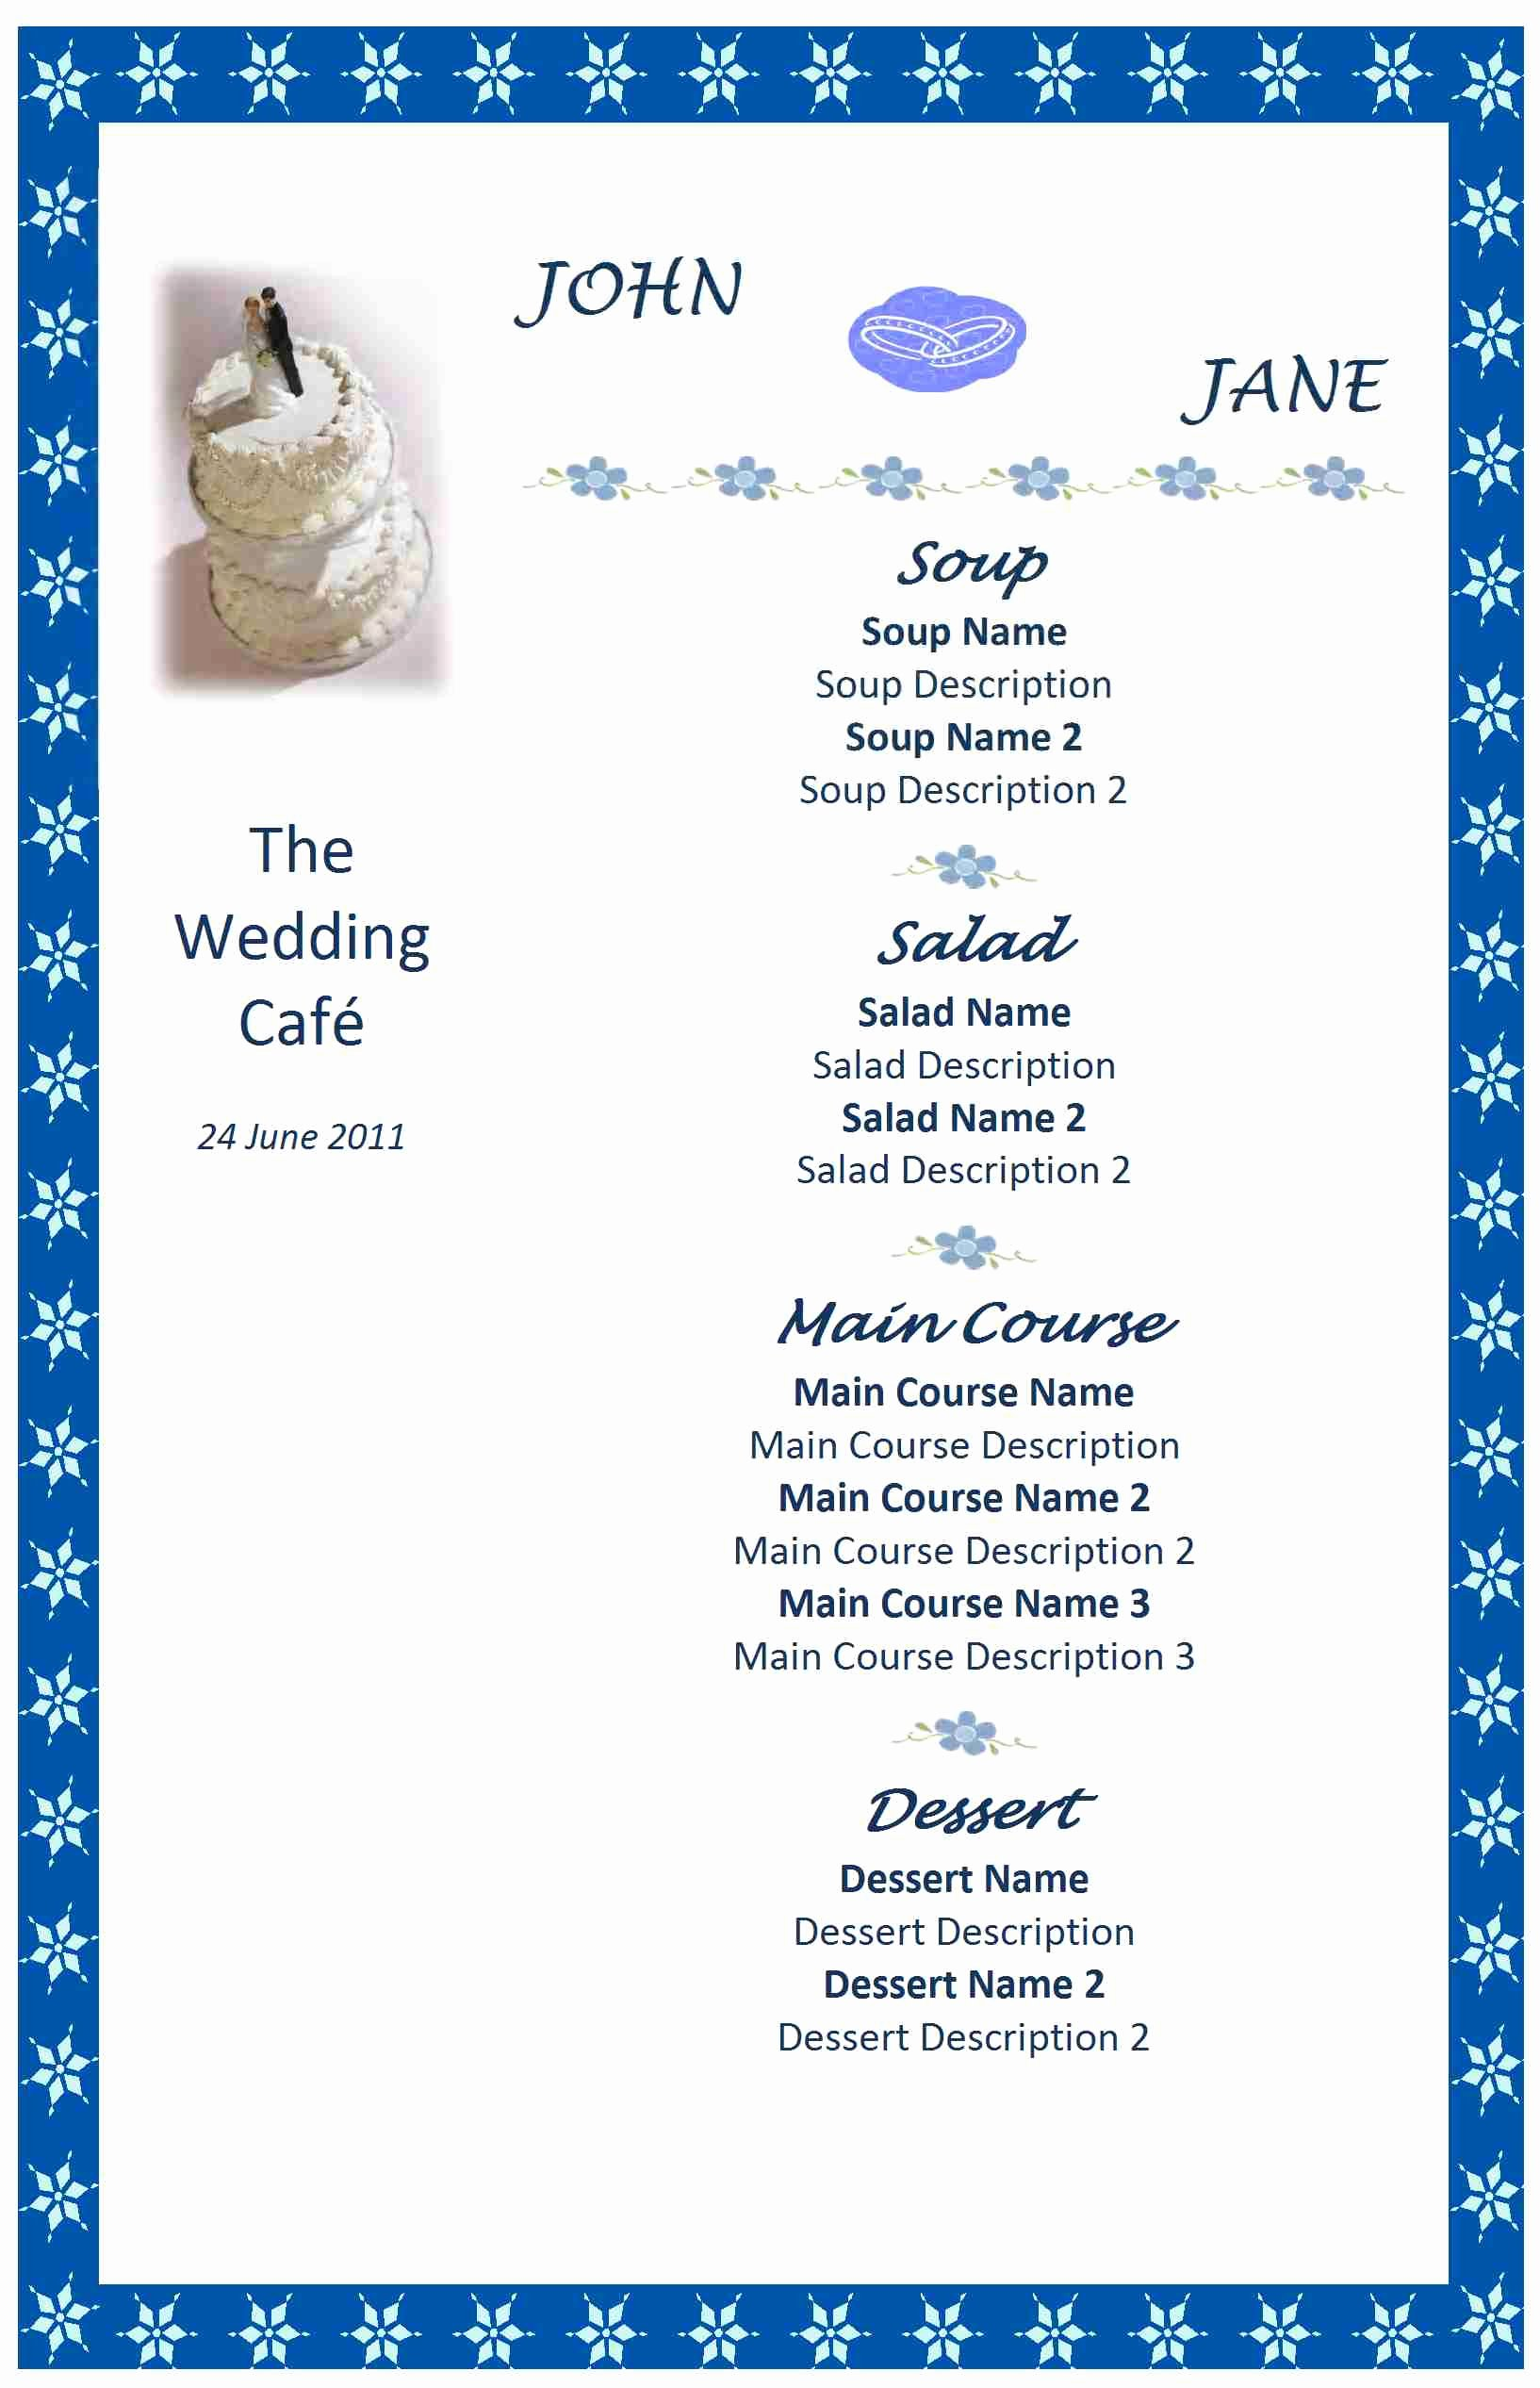 Wedding Menu Template Word Inspirational Wedding Menu